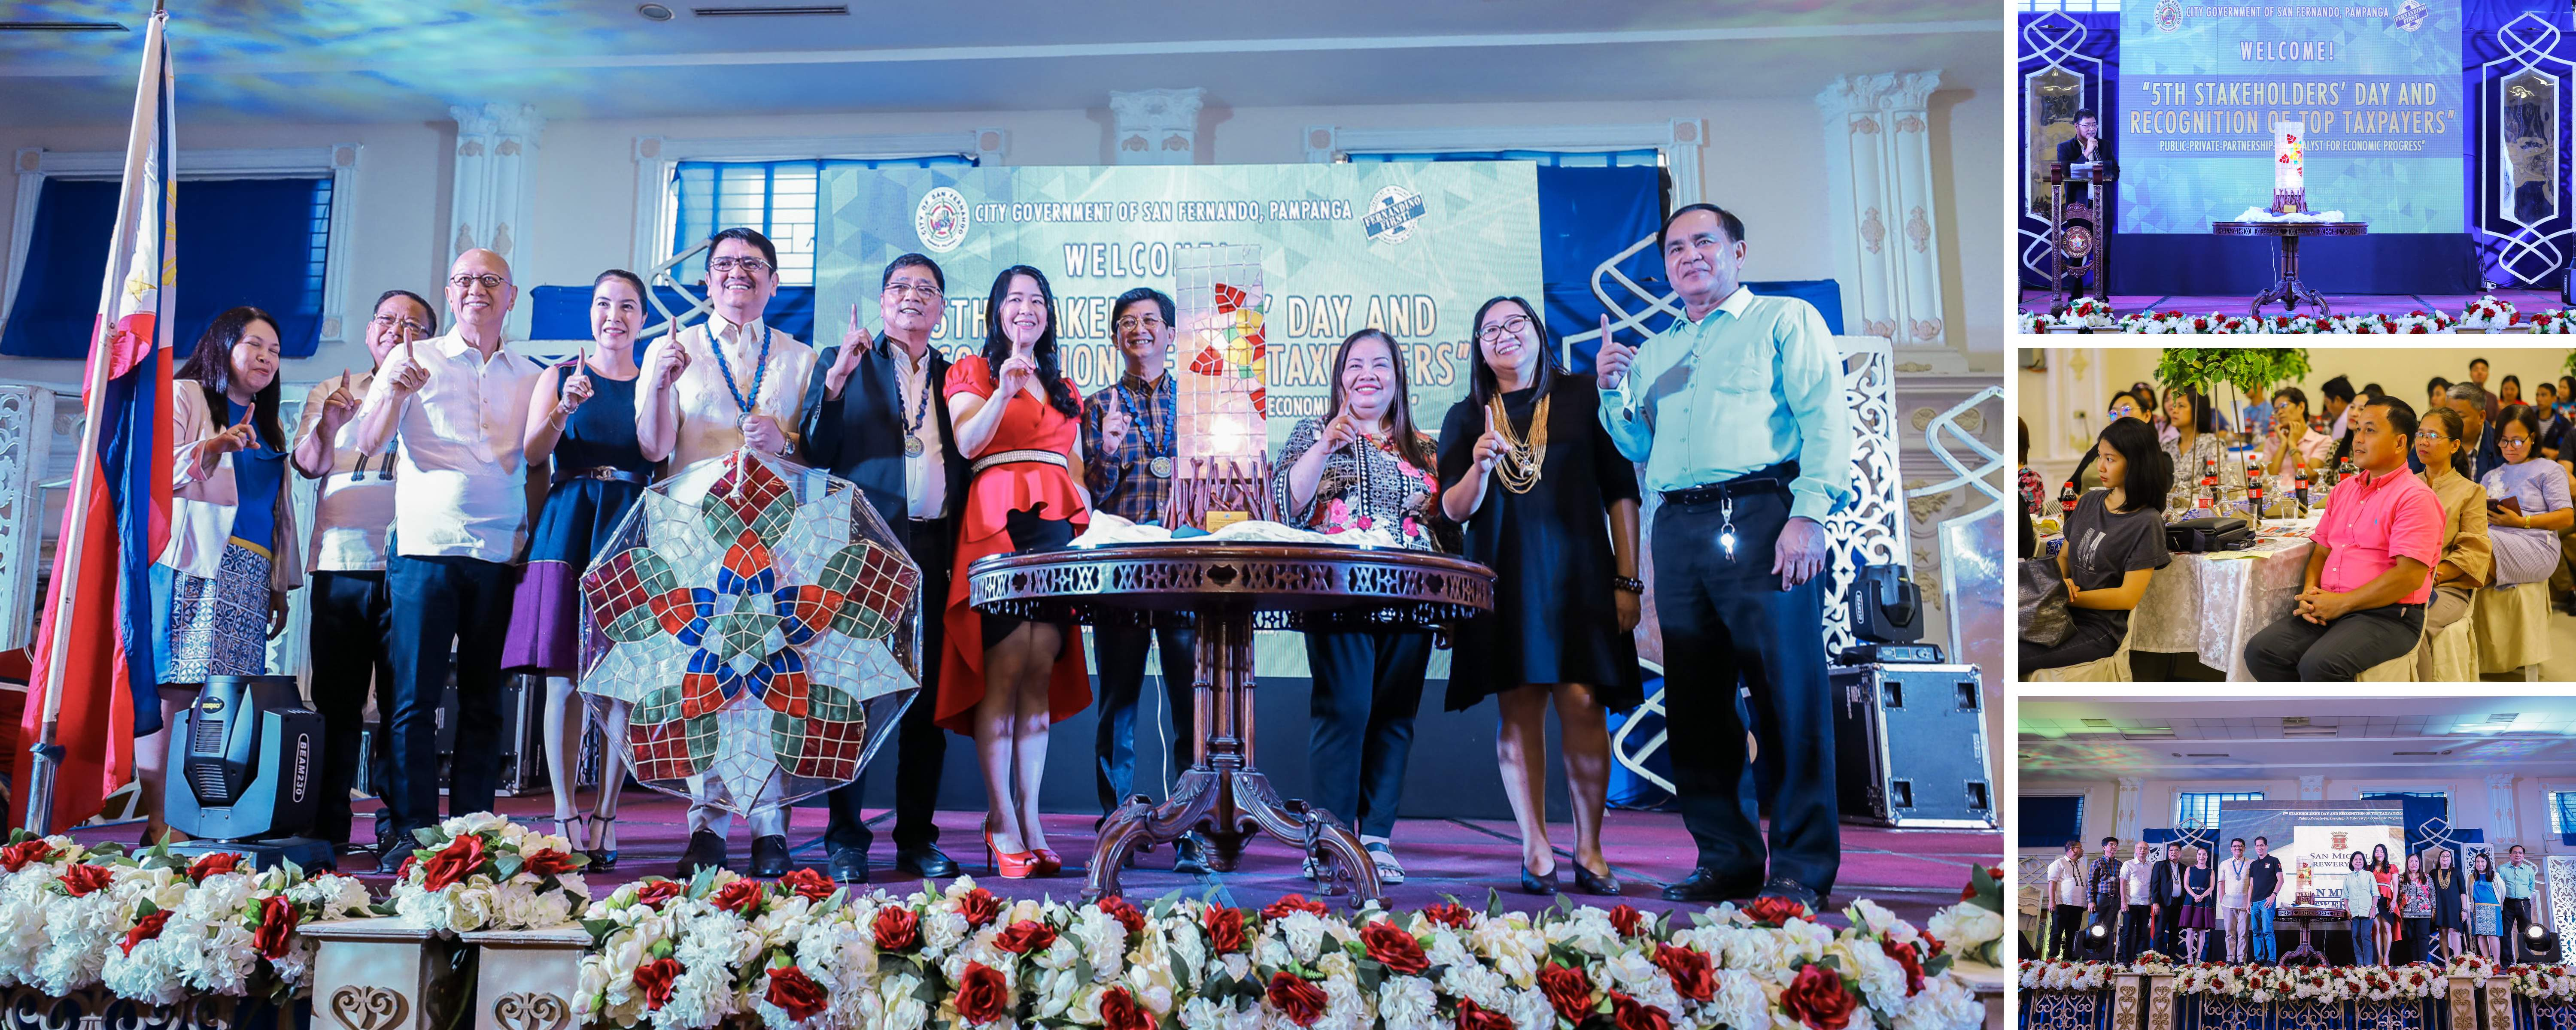 CSF recognizes taxpayers' role in community development